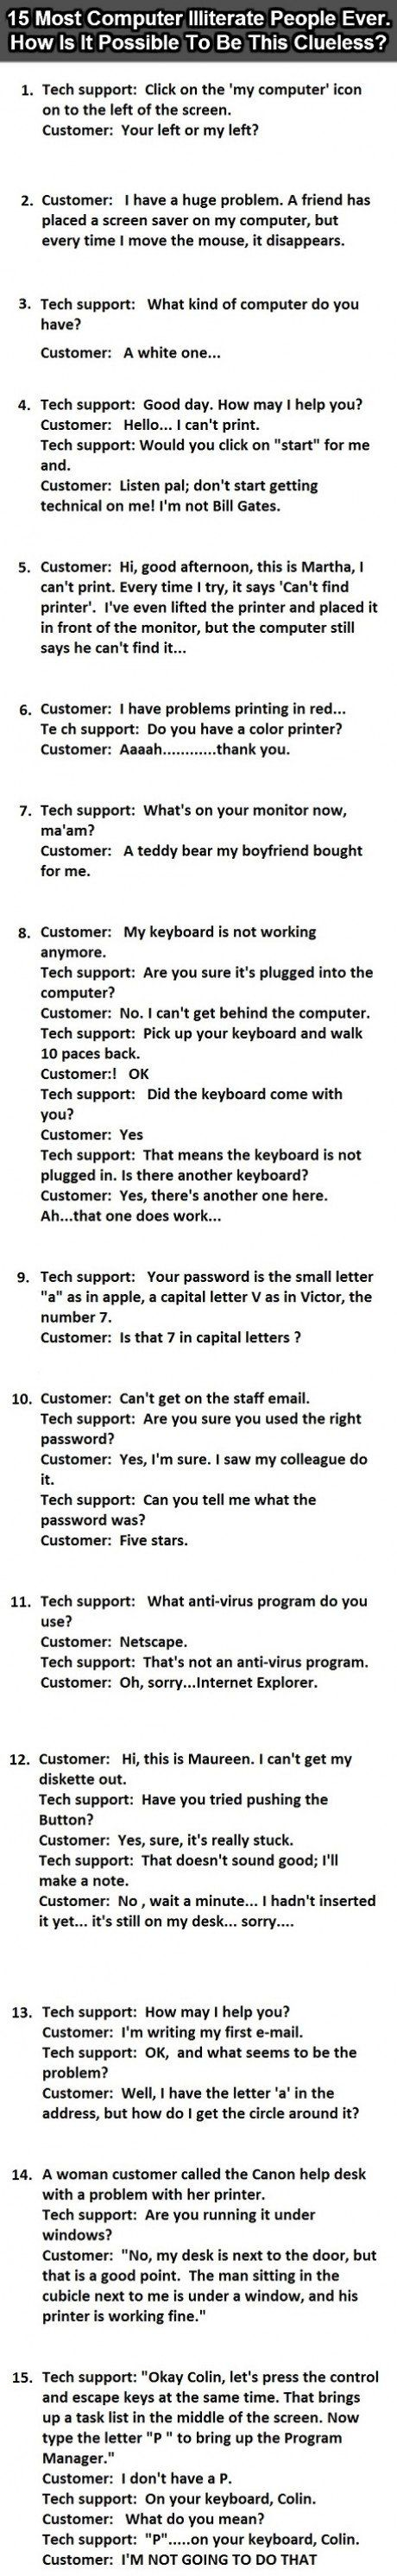 15 Of The Most Computer Illiterate People To Have Ever Called Tech Support - NewsLinQ